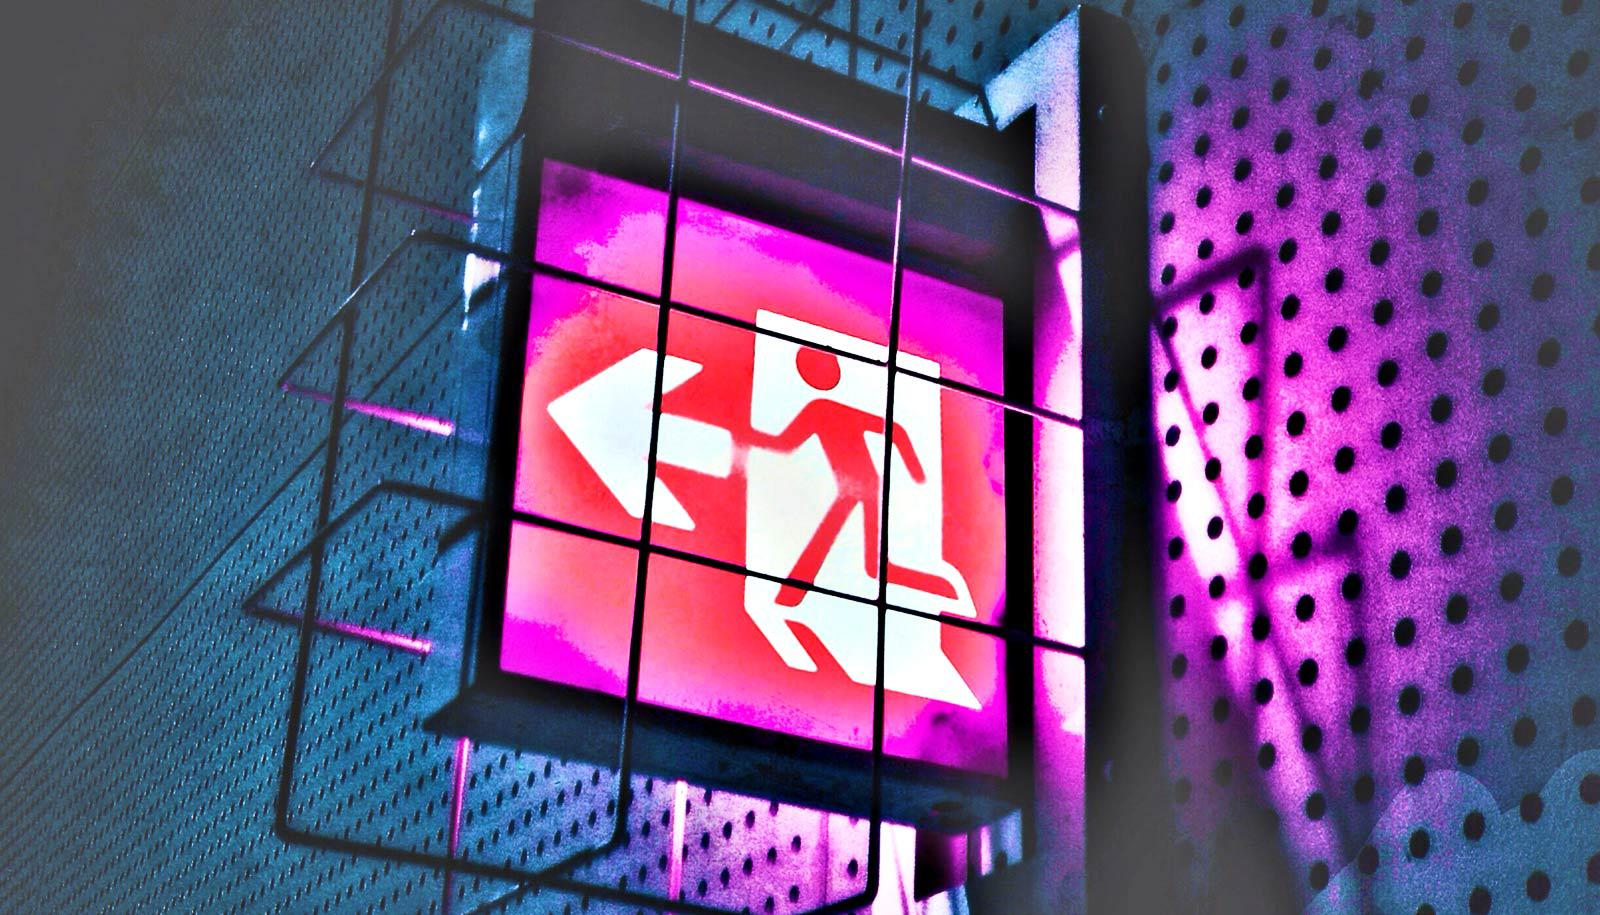 exit sign in cage on wall, purple light